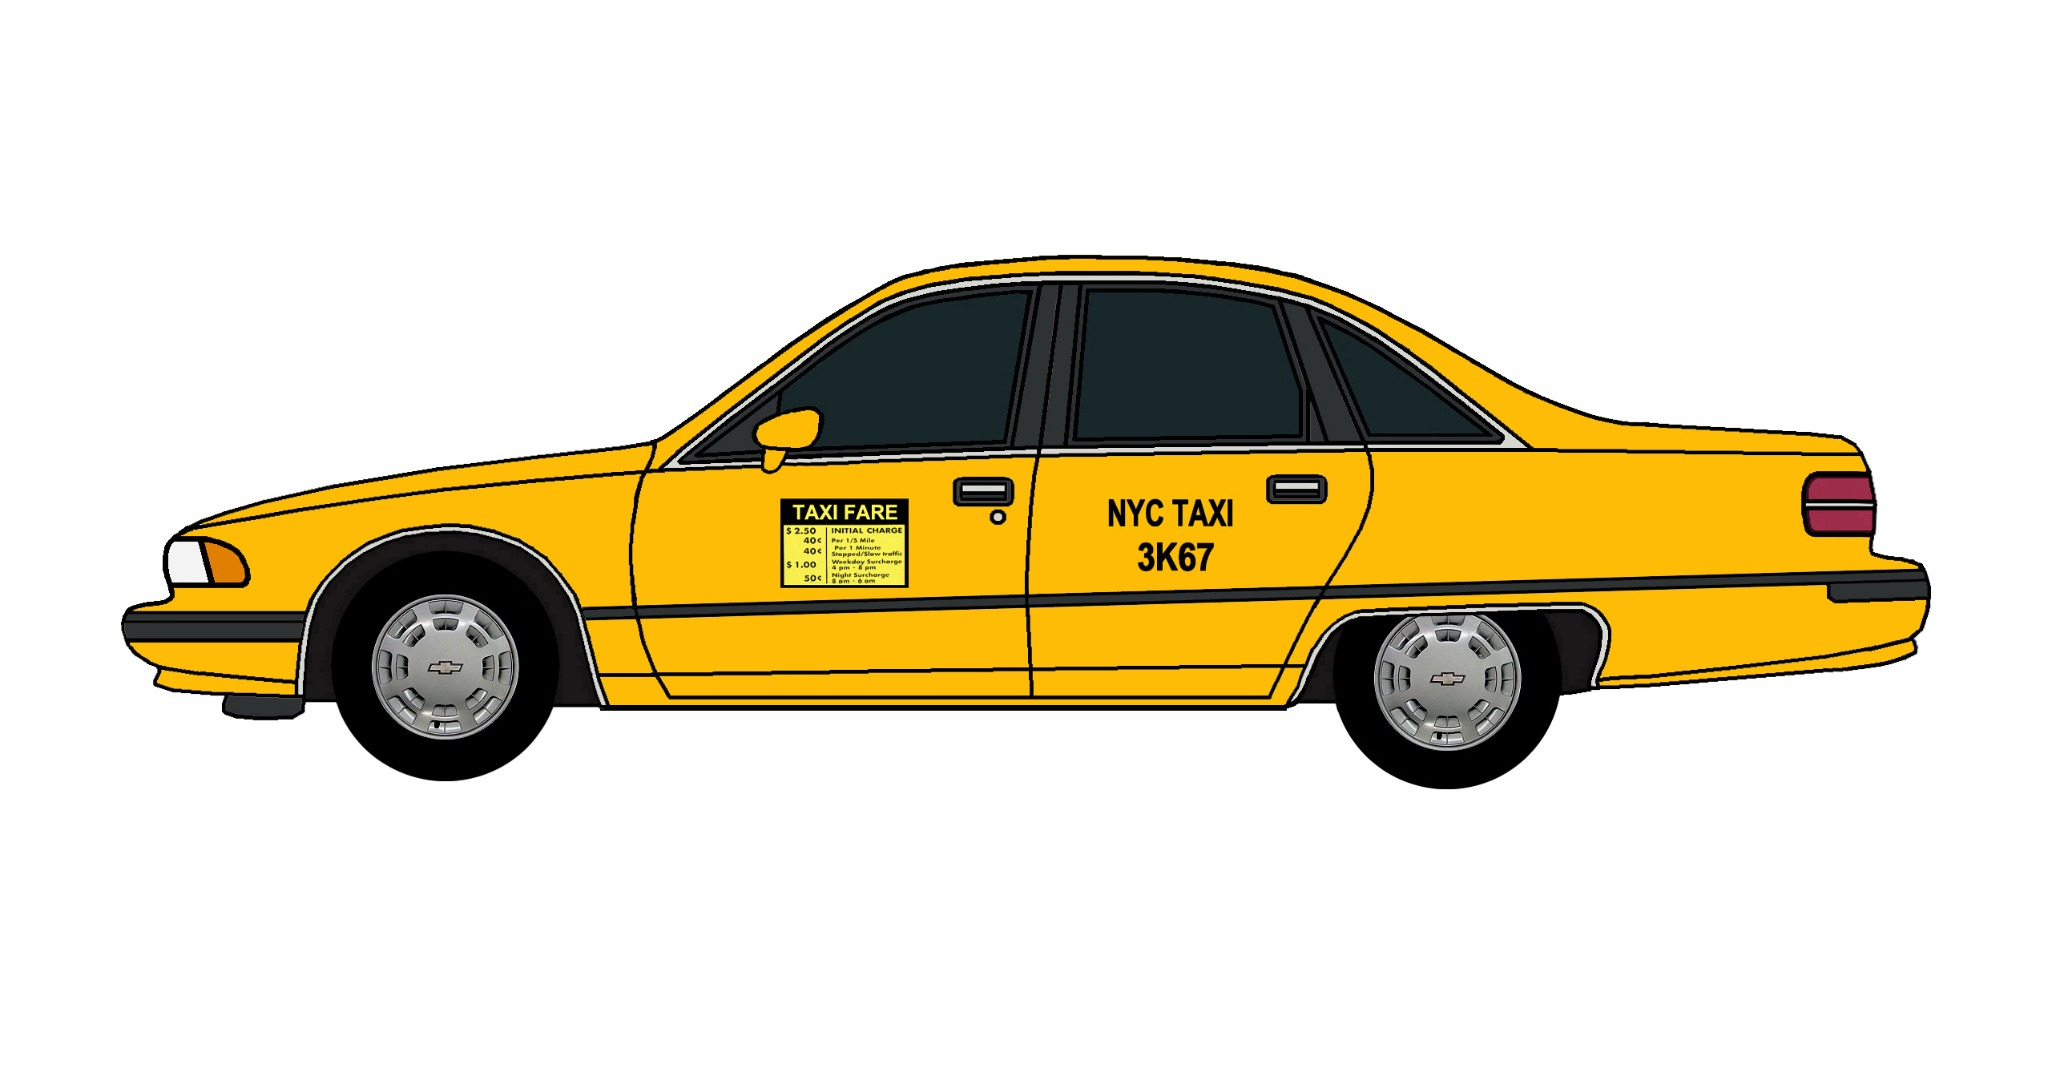 1991 Chevy Caprice NYC TAXI